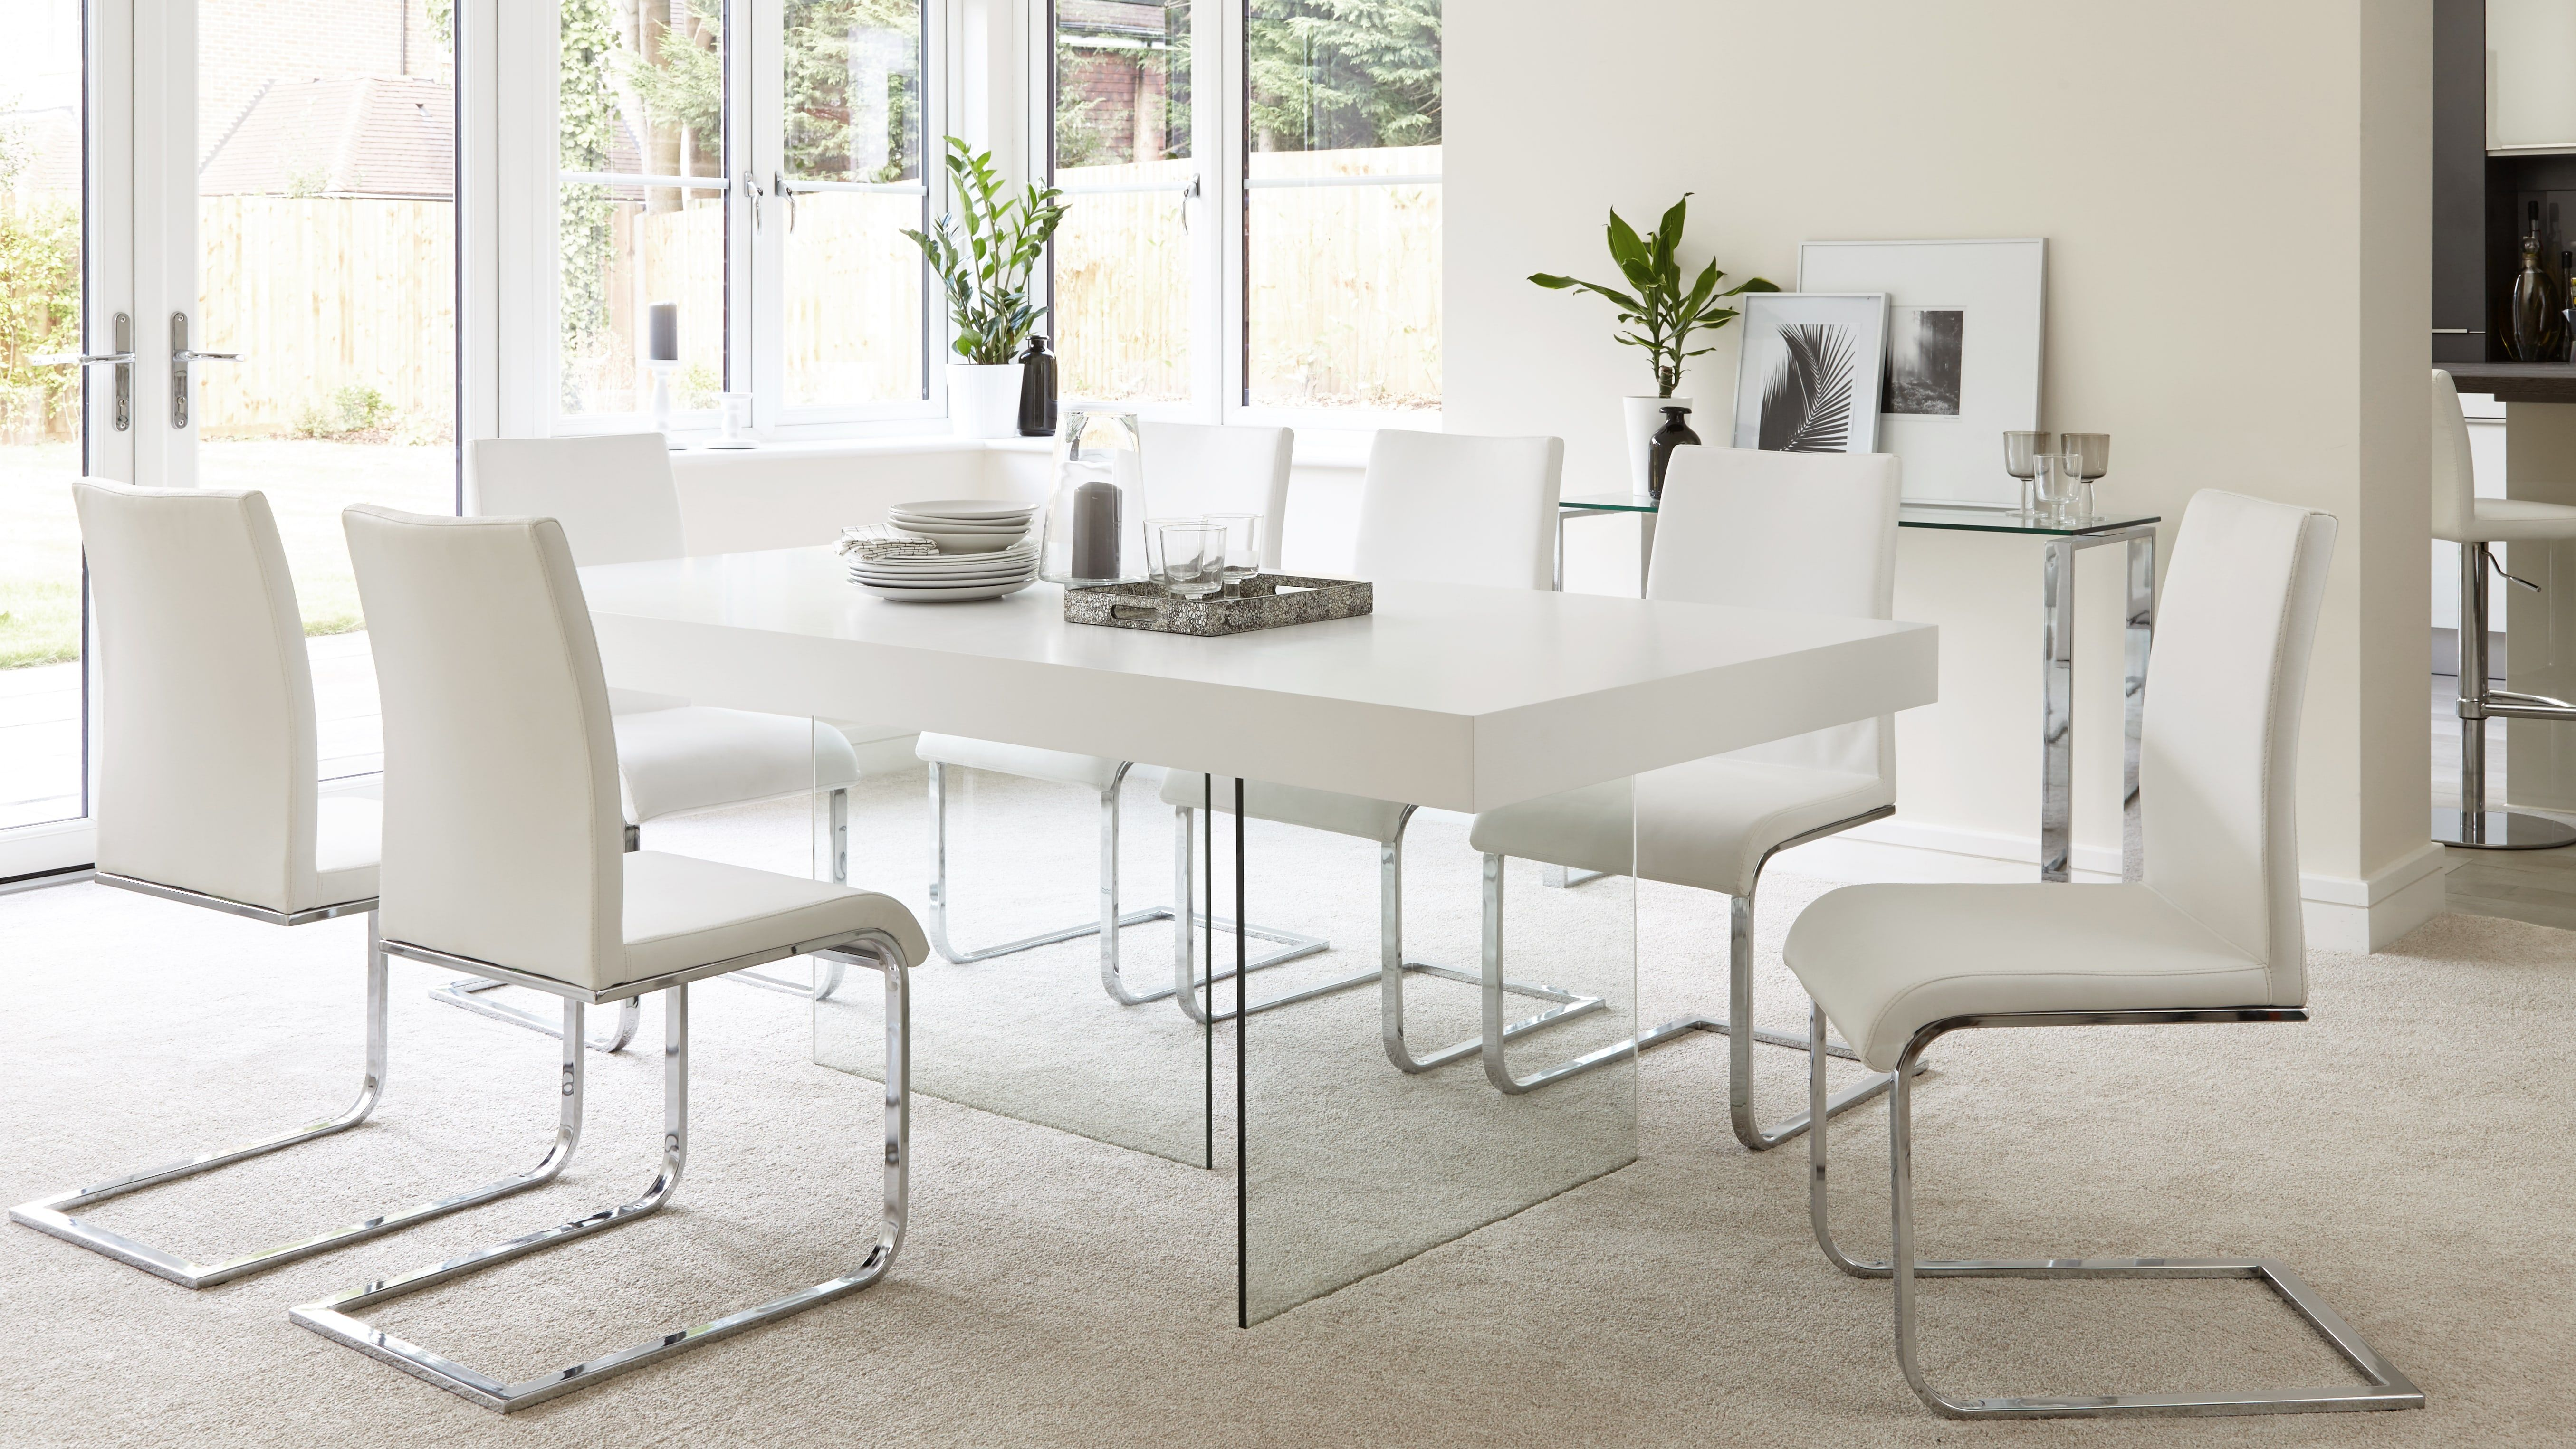 Aria White Oak And Glass Dining Table White Glass Dining Table